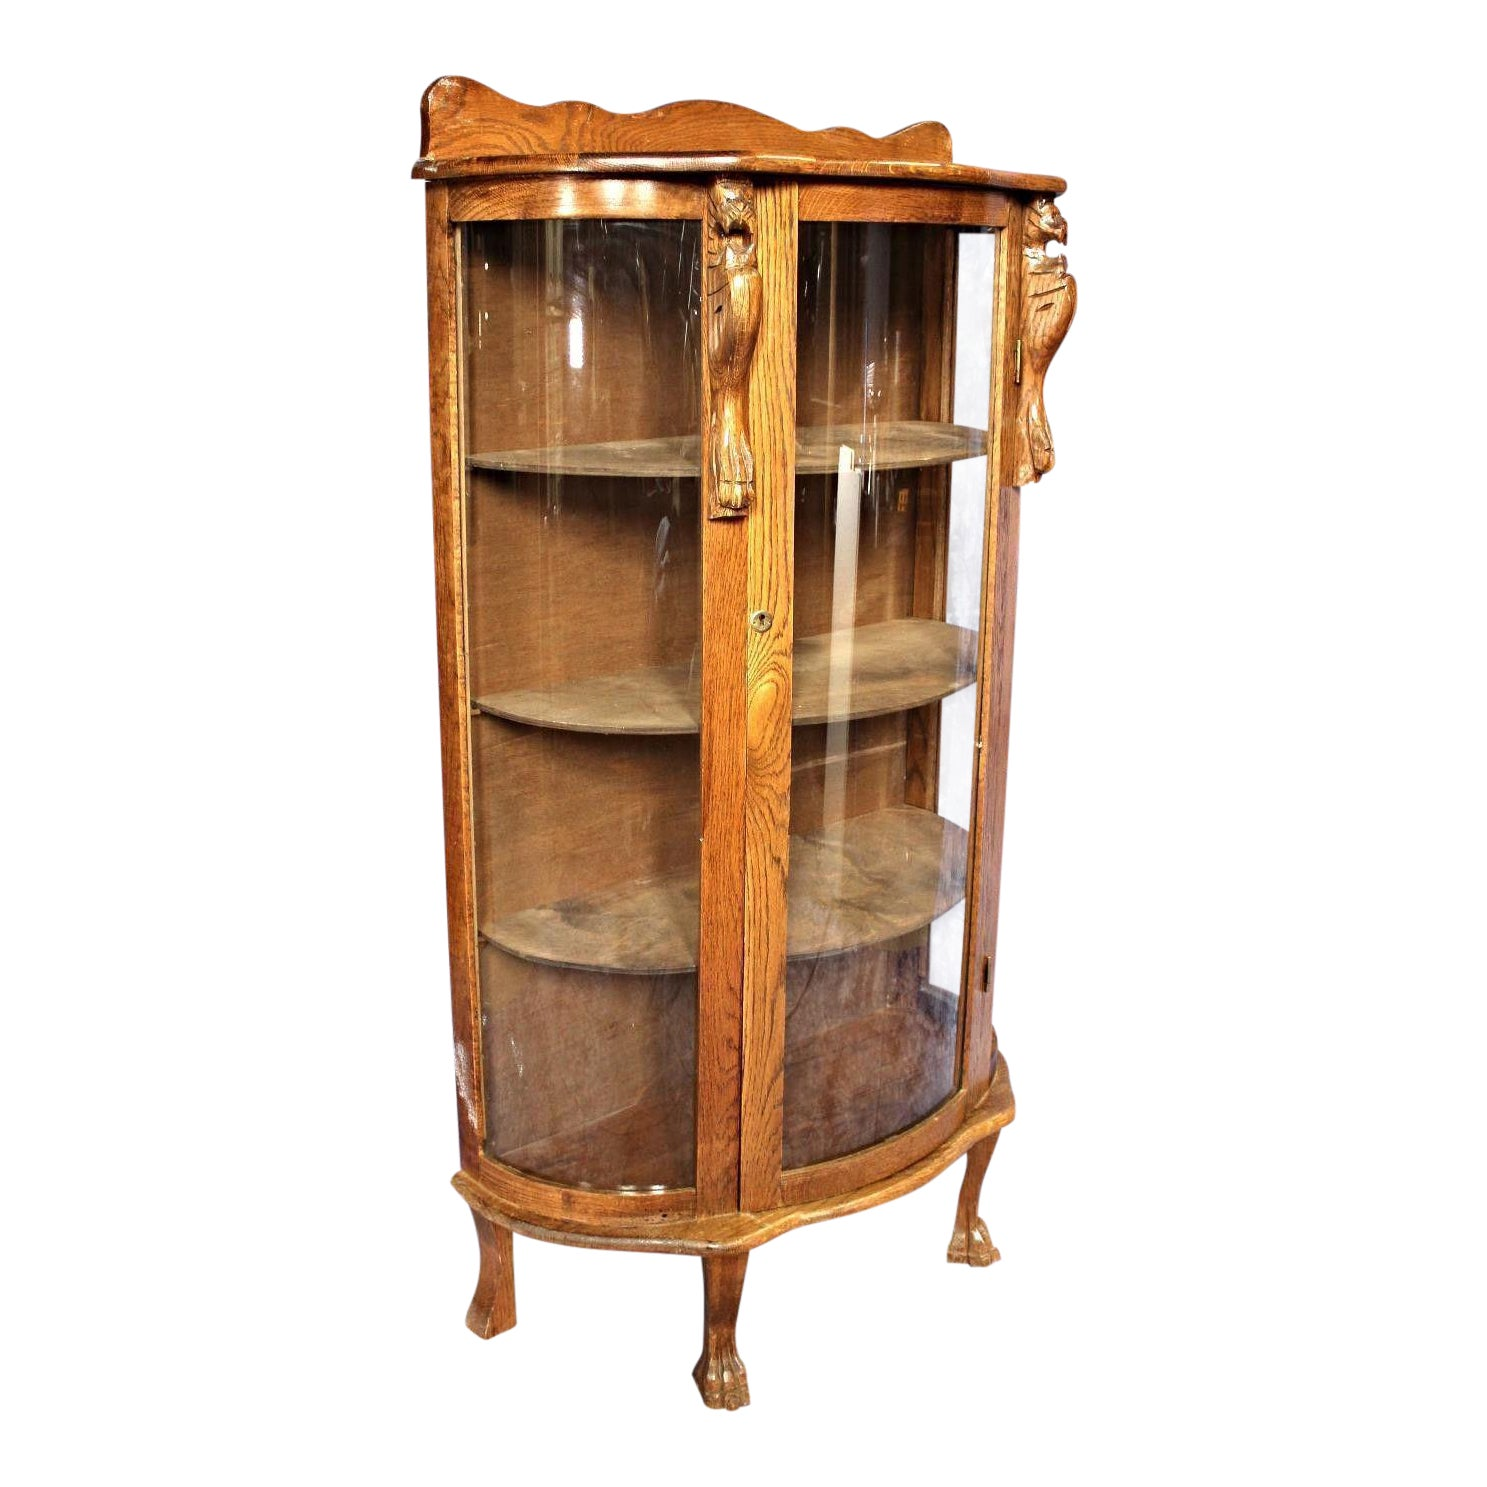 China Curio: Antique Oak Curved Curio Display China Cabinet, 1900s